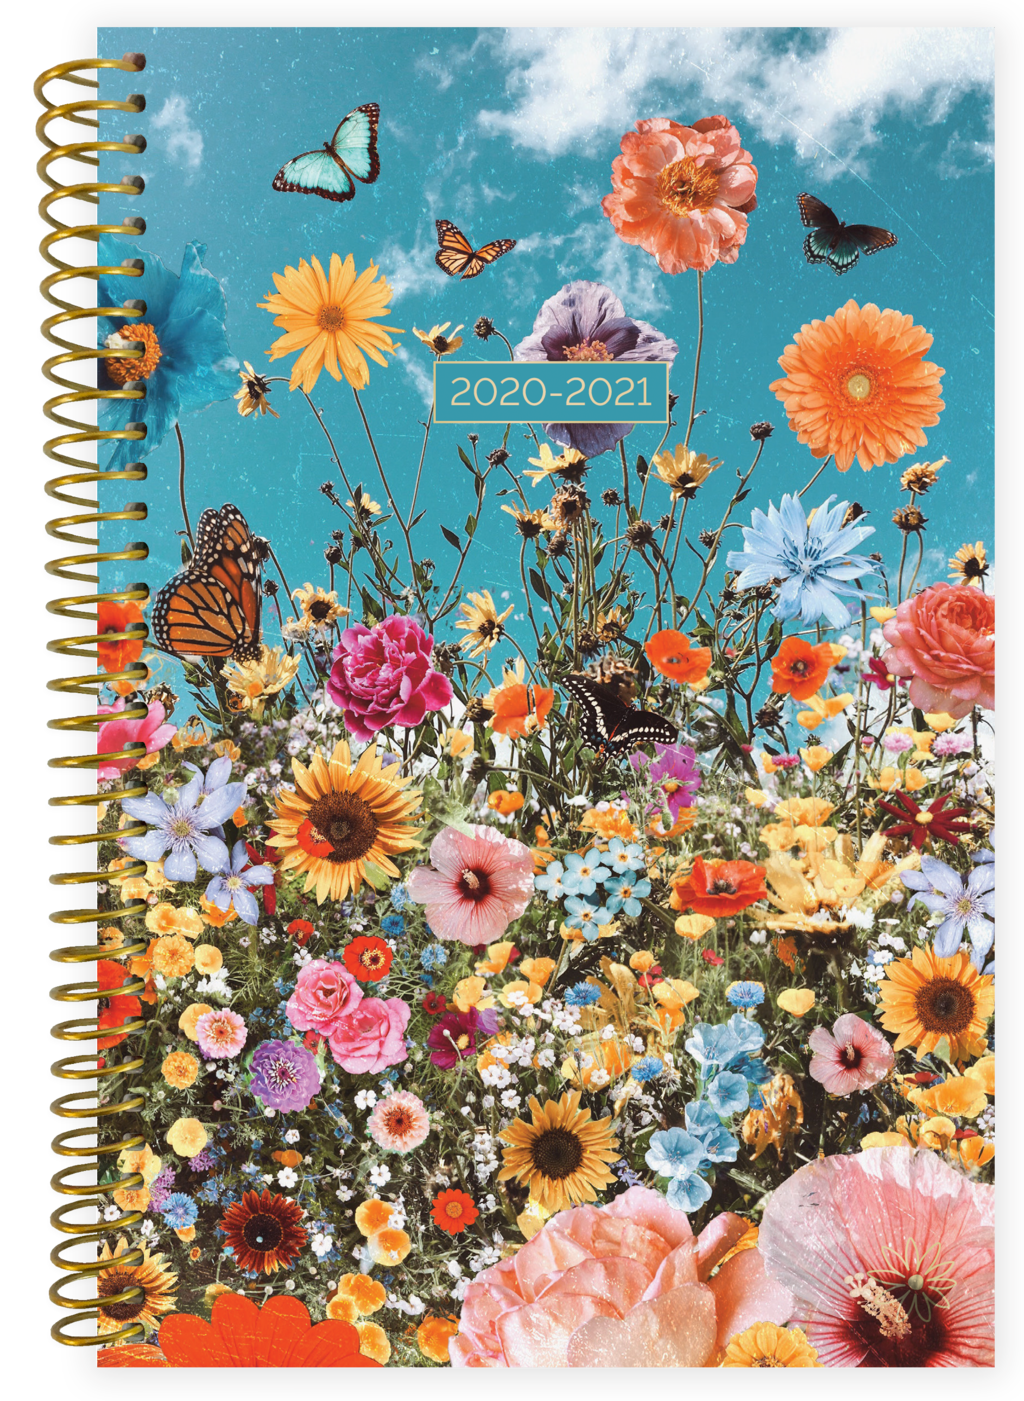 2020-2021 Soft Cover Planner Wildflowers